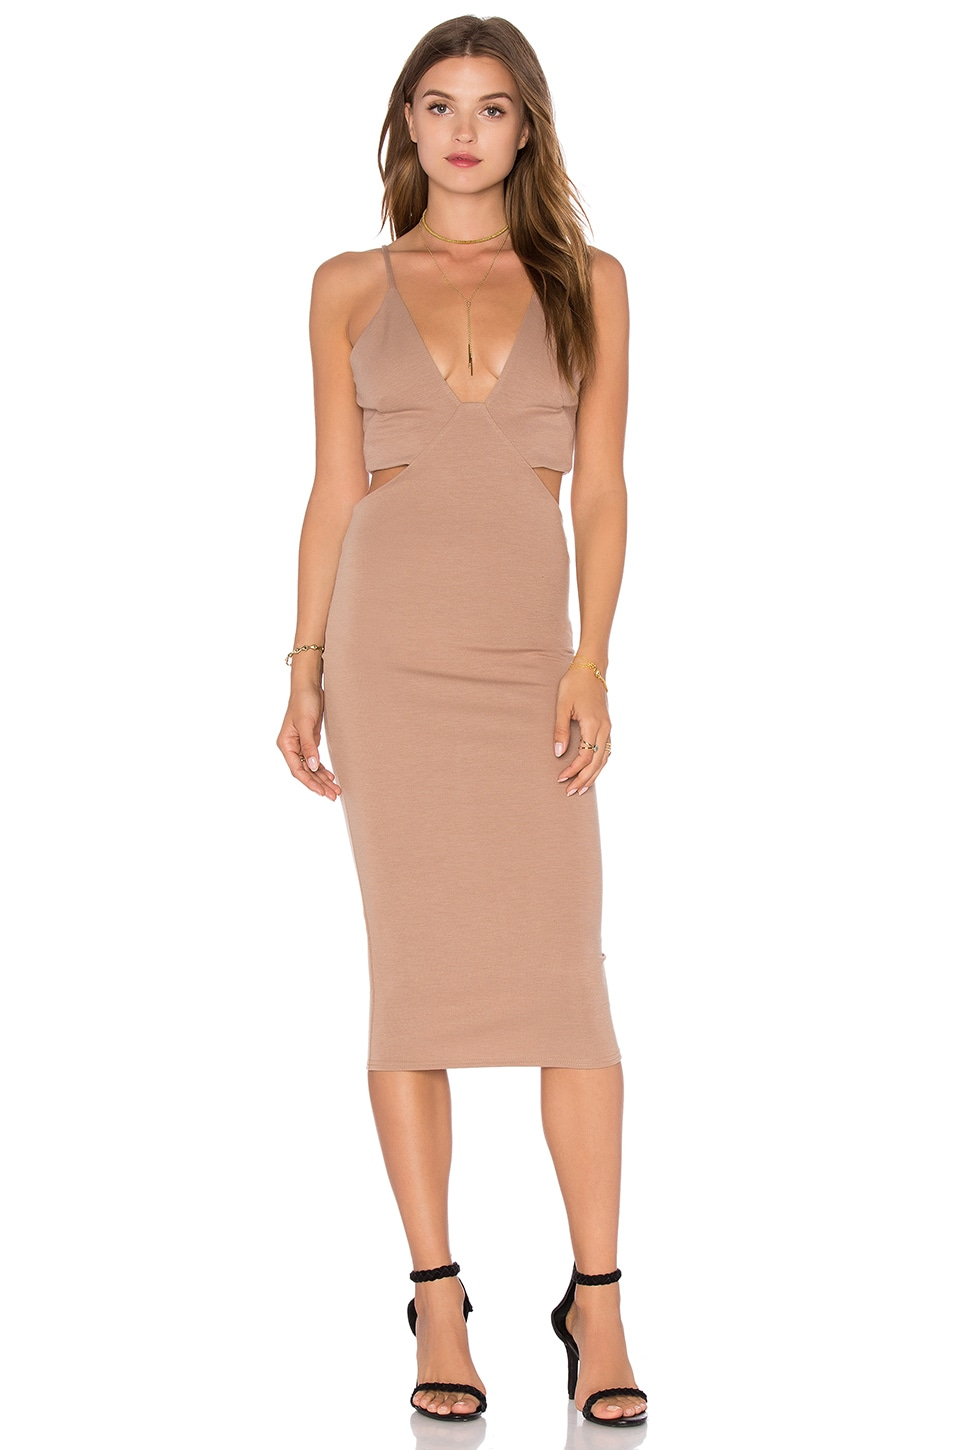 Twin Sister V Neck Back Cut Out Dress in Nude